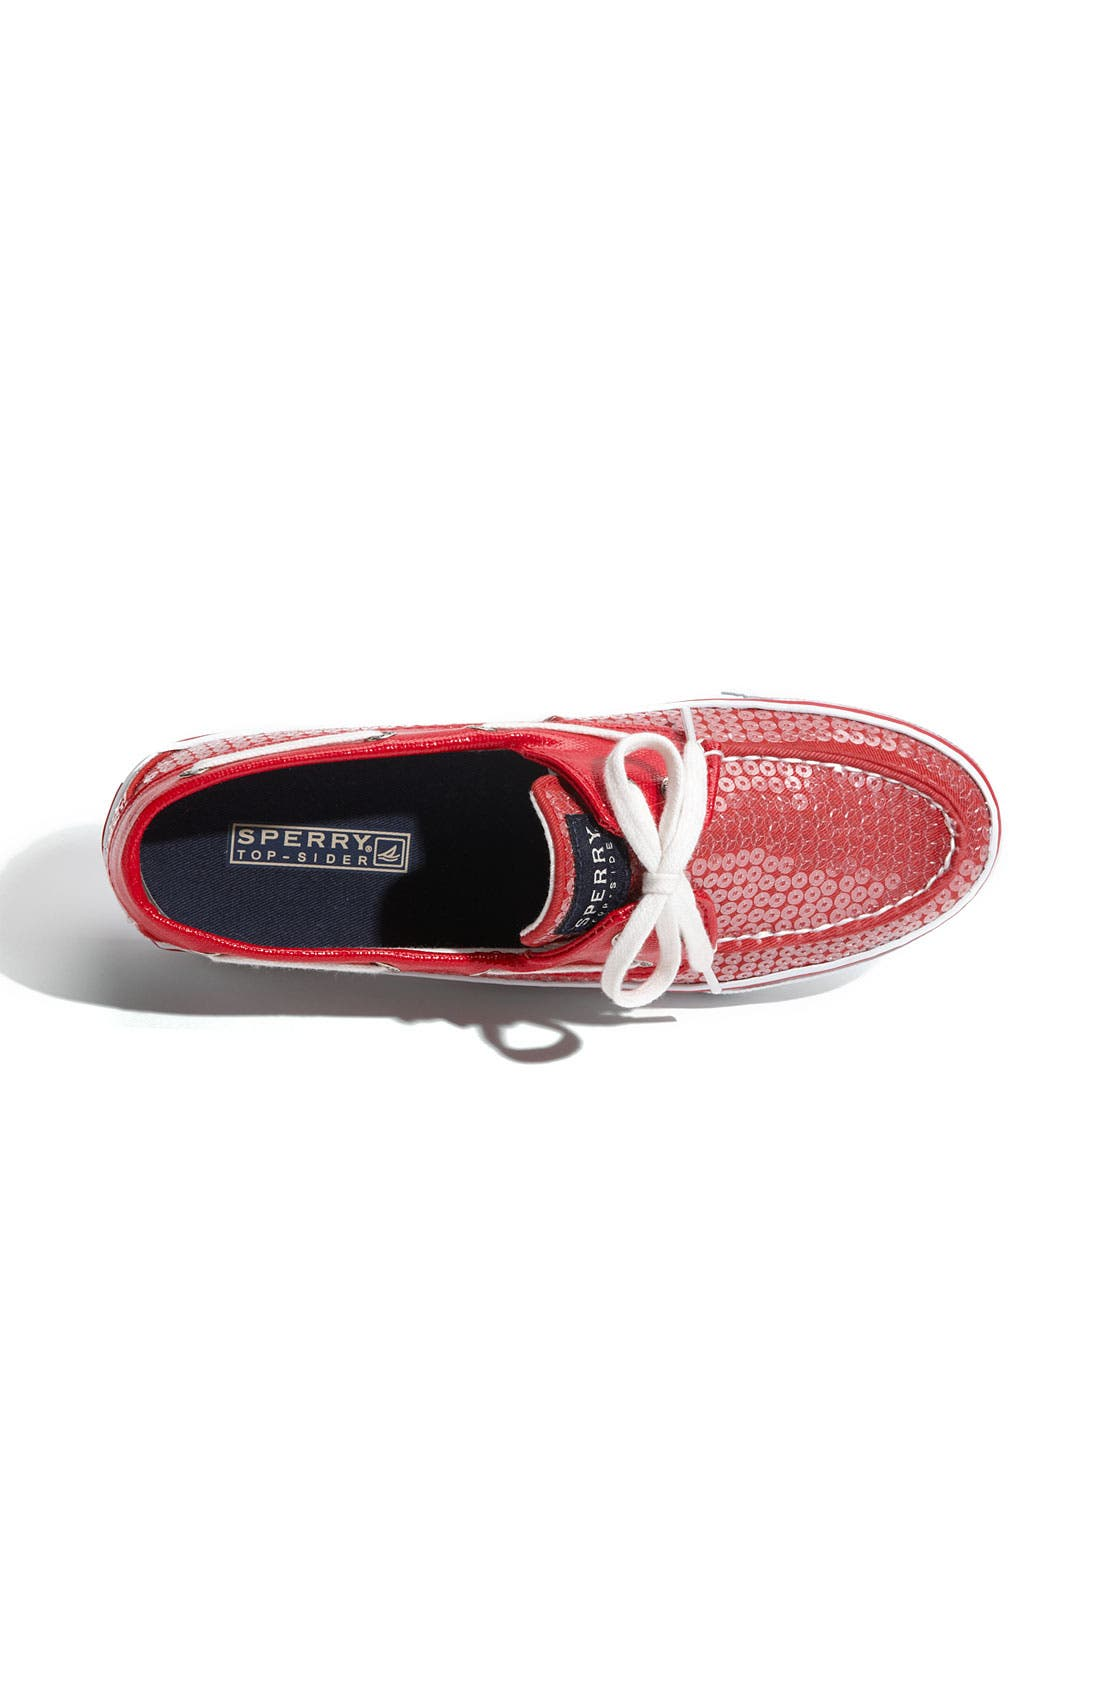 Top-Sider<sup>®</sup> 'Bahama' Sequined Boat Shoe,                             Alternate thumbnail 155, color,